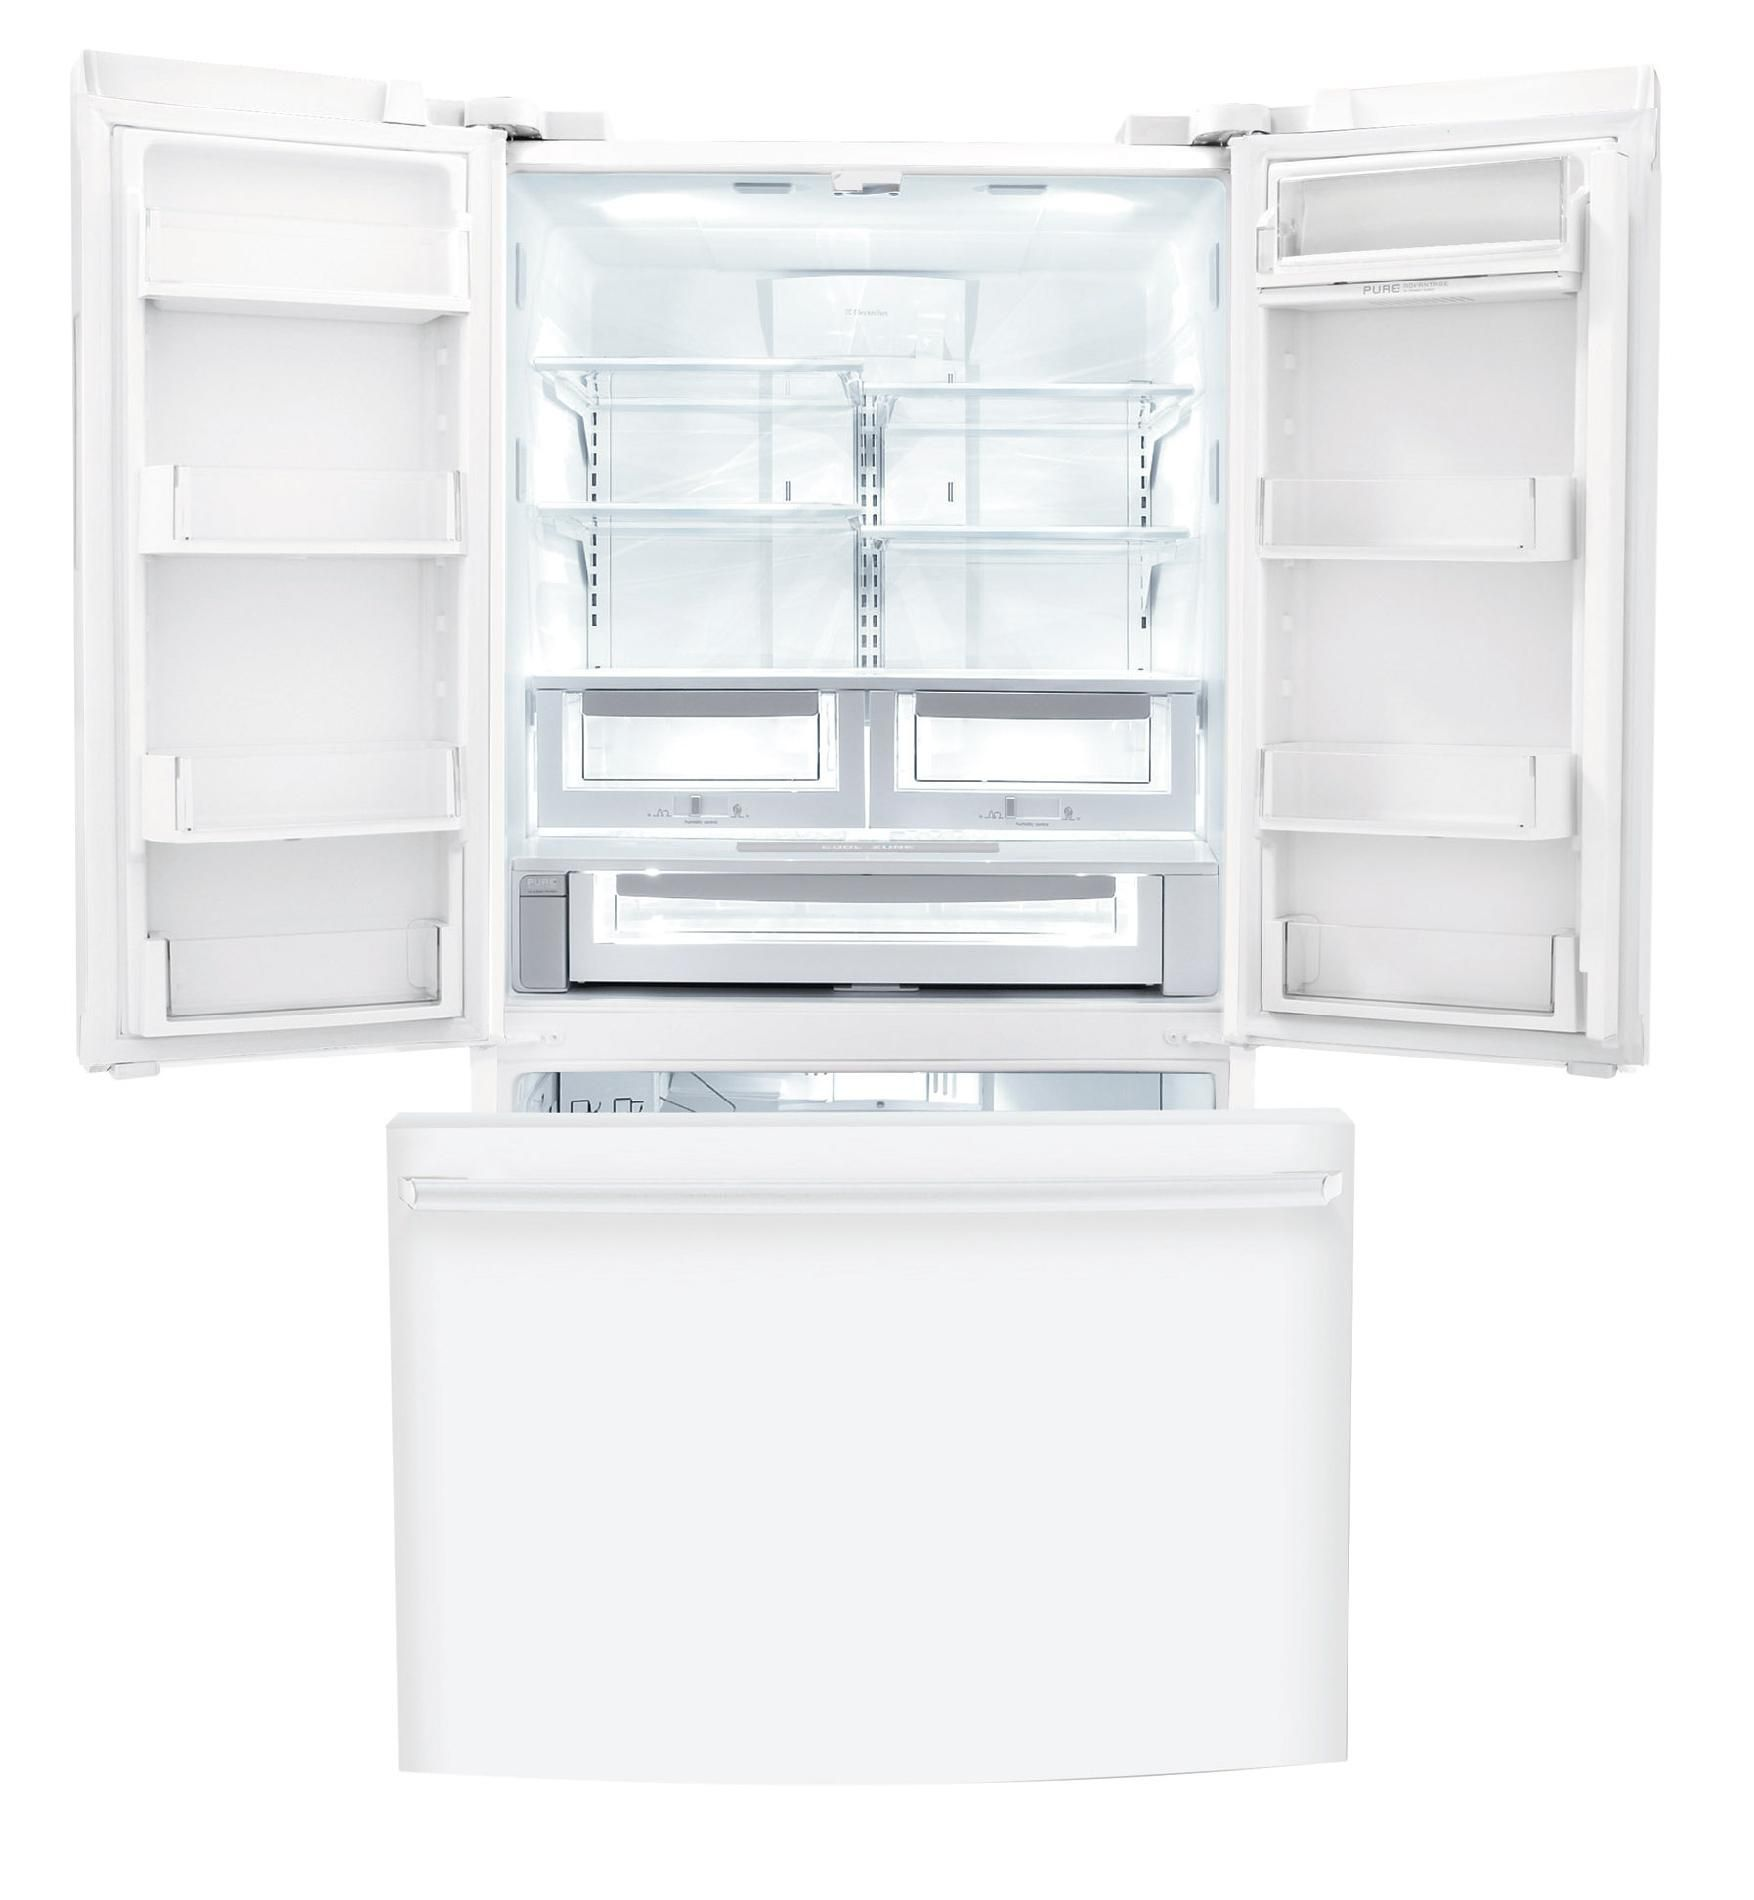 Electrolux 23 cu. ft. Counter-depth French Door Refrigerator  - White